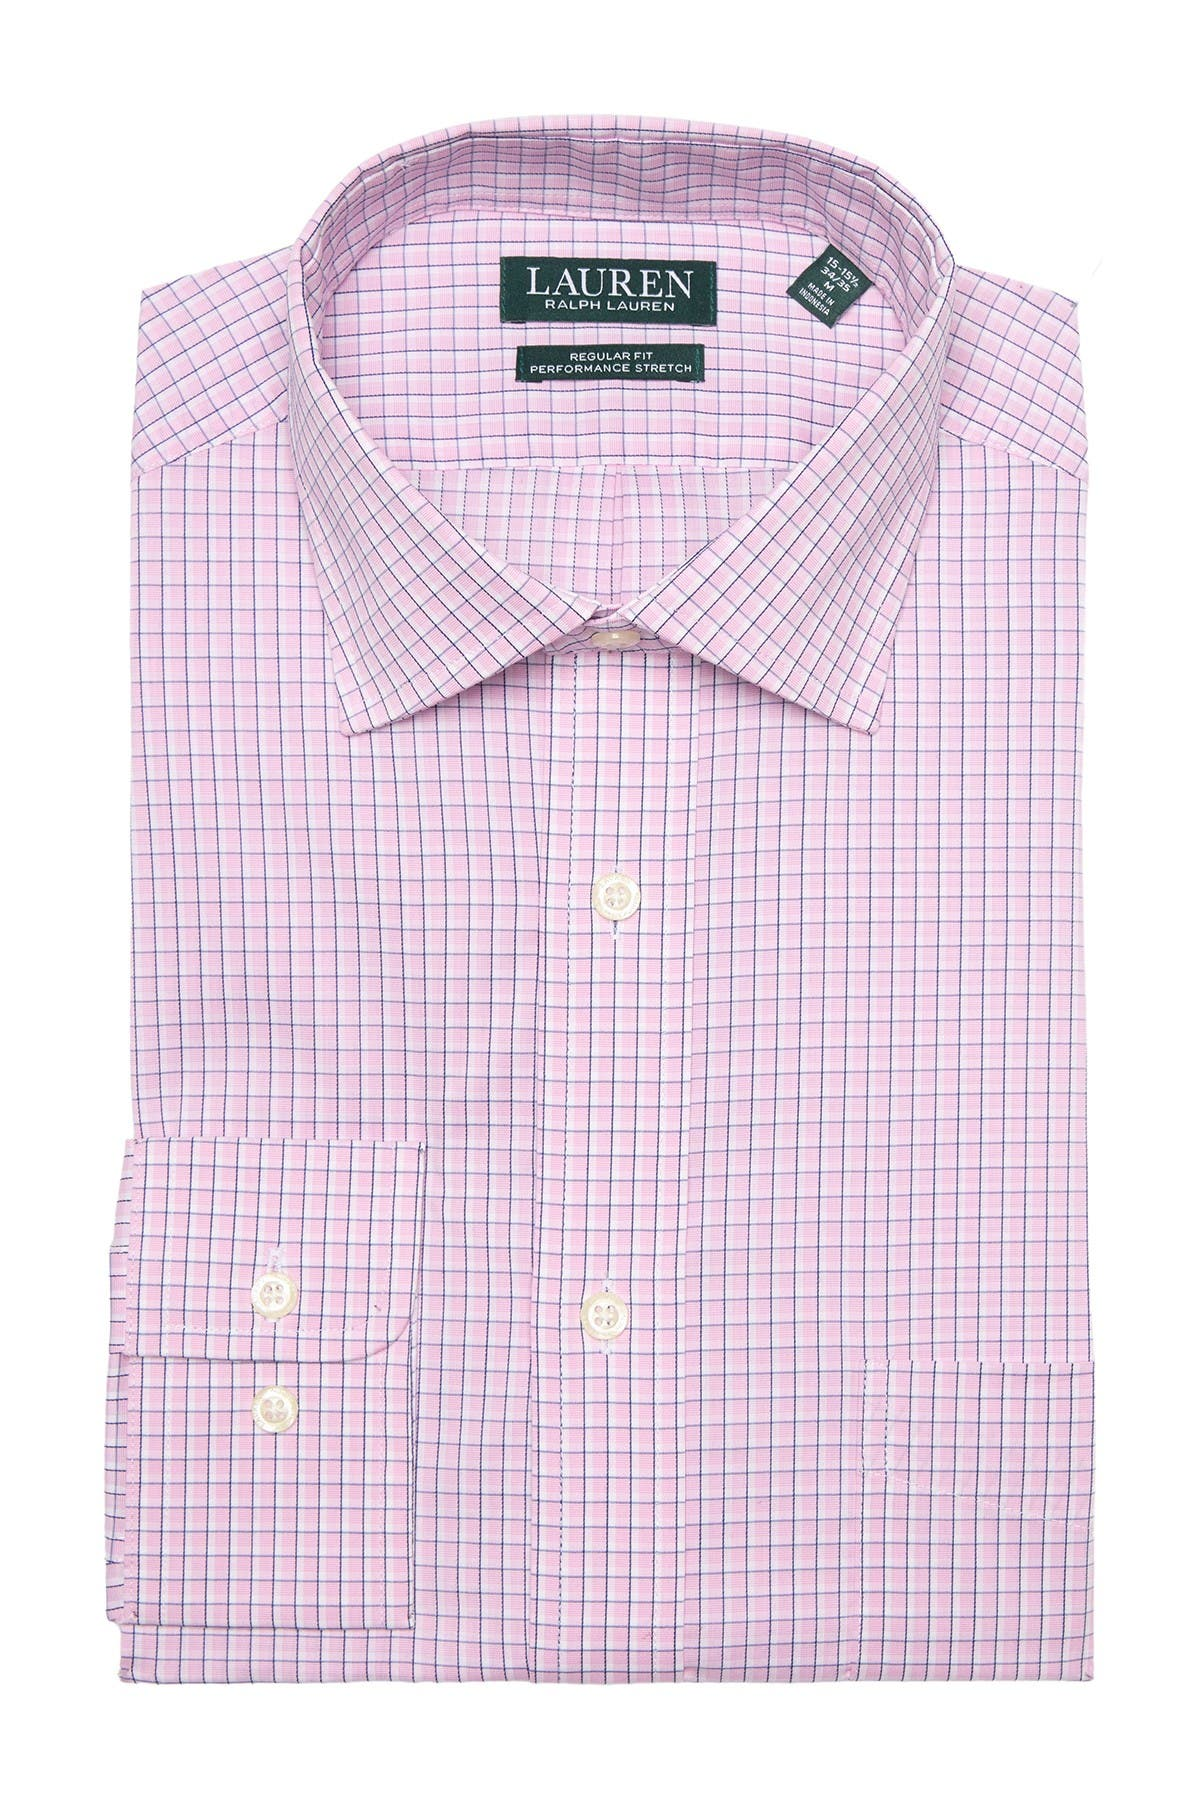 Image of Lauren Ralph Lauren Check Regular Fit Stretch Dress Shirt